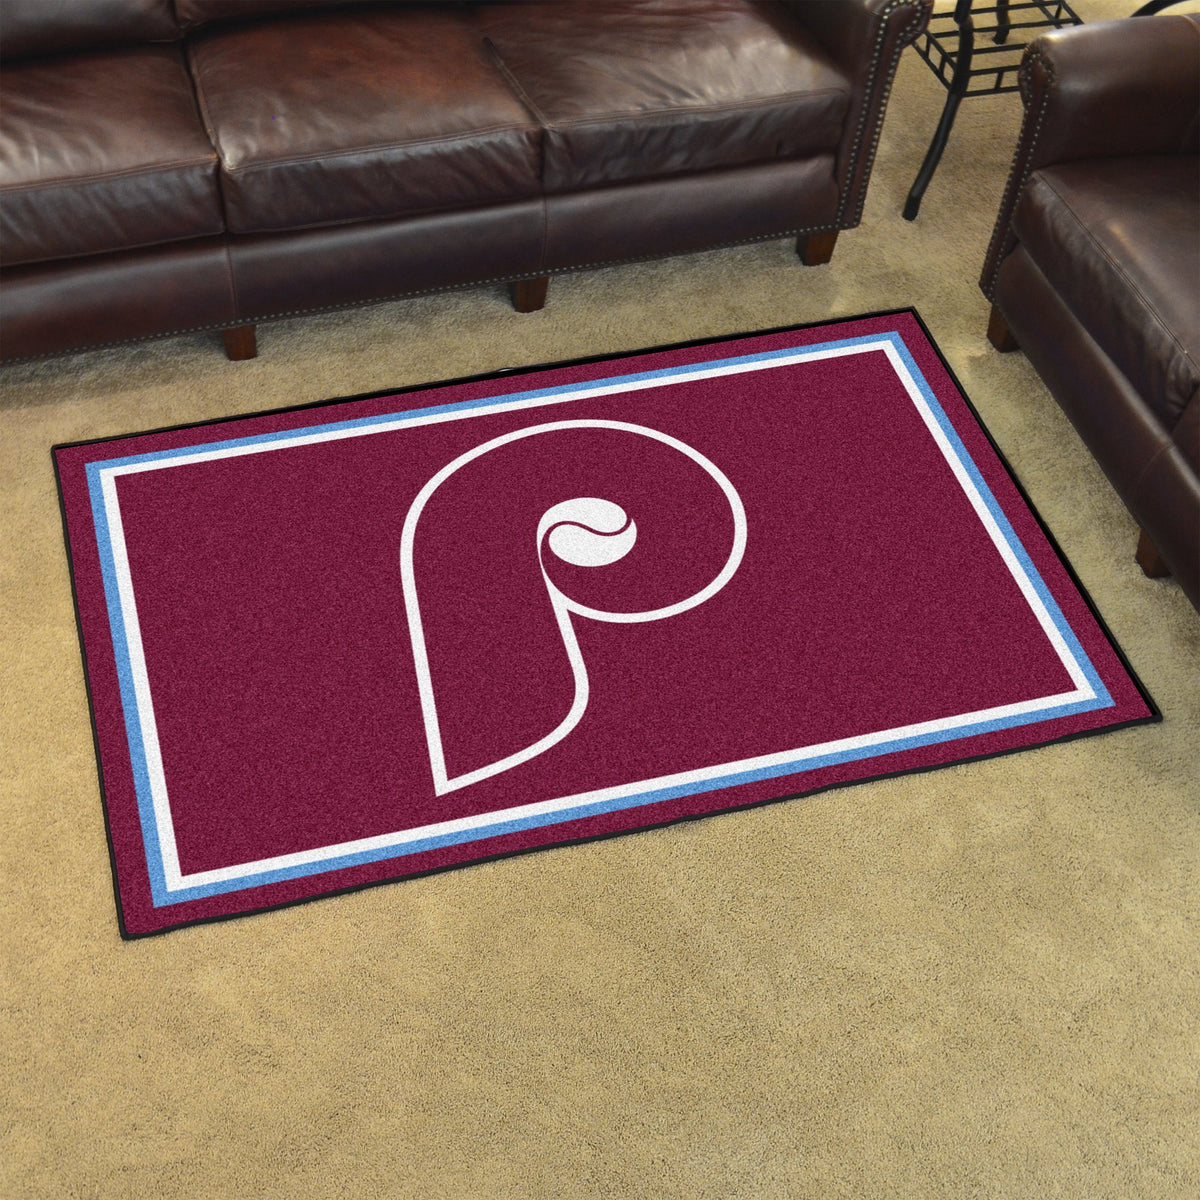 MLB Retro - 4' x 6' Rug MLB Retro Mats, Plush Rugs, 4x6 Rug, MLB, Home Fan Mats Philadelphia Phillies